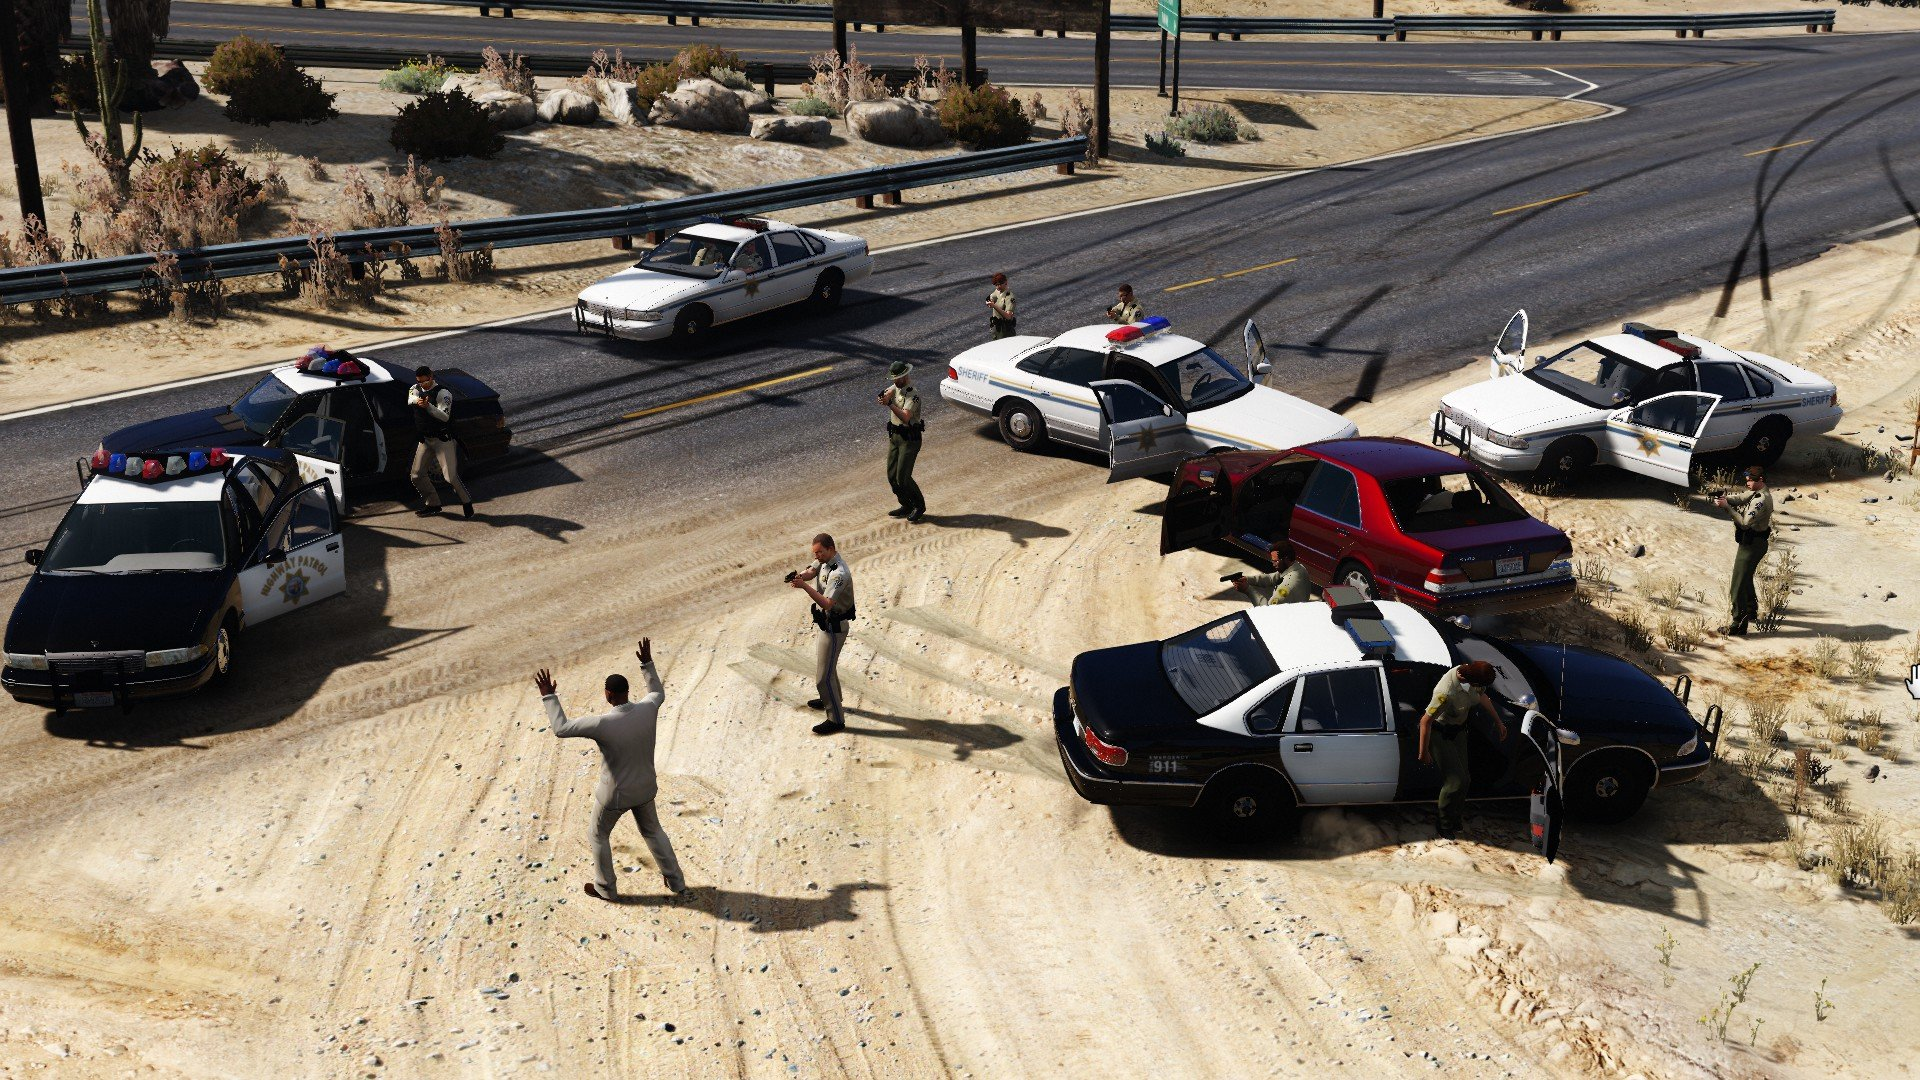 Rural Road chase ended lucky